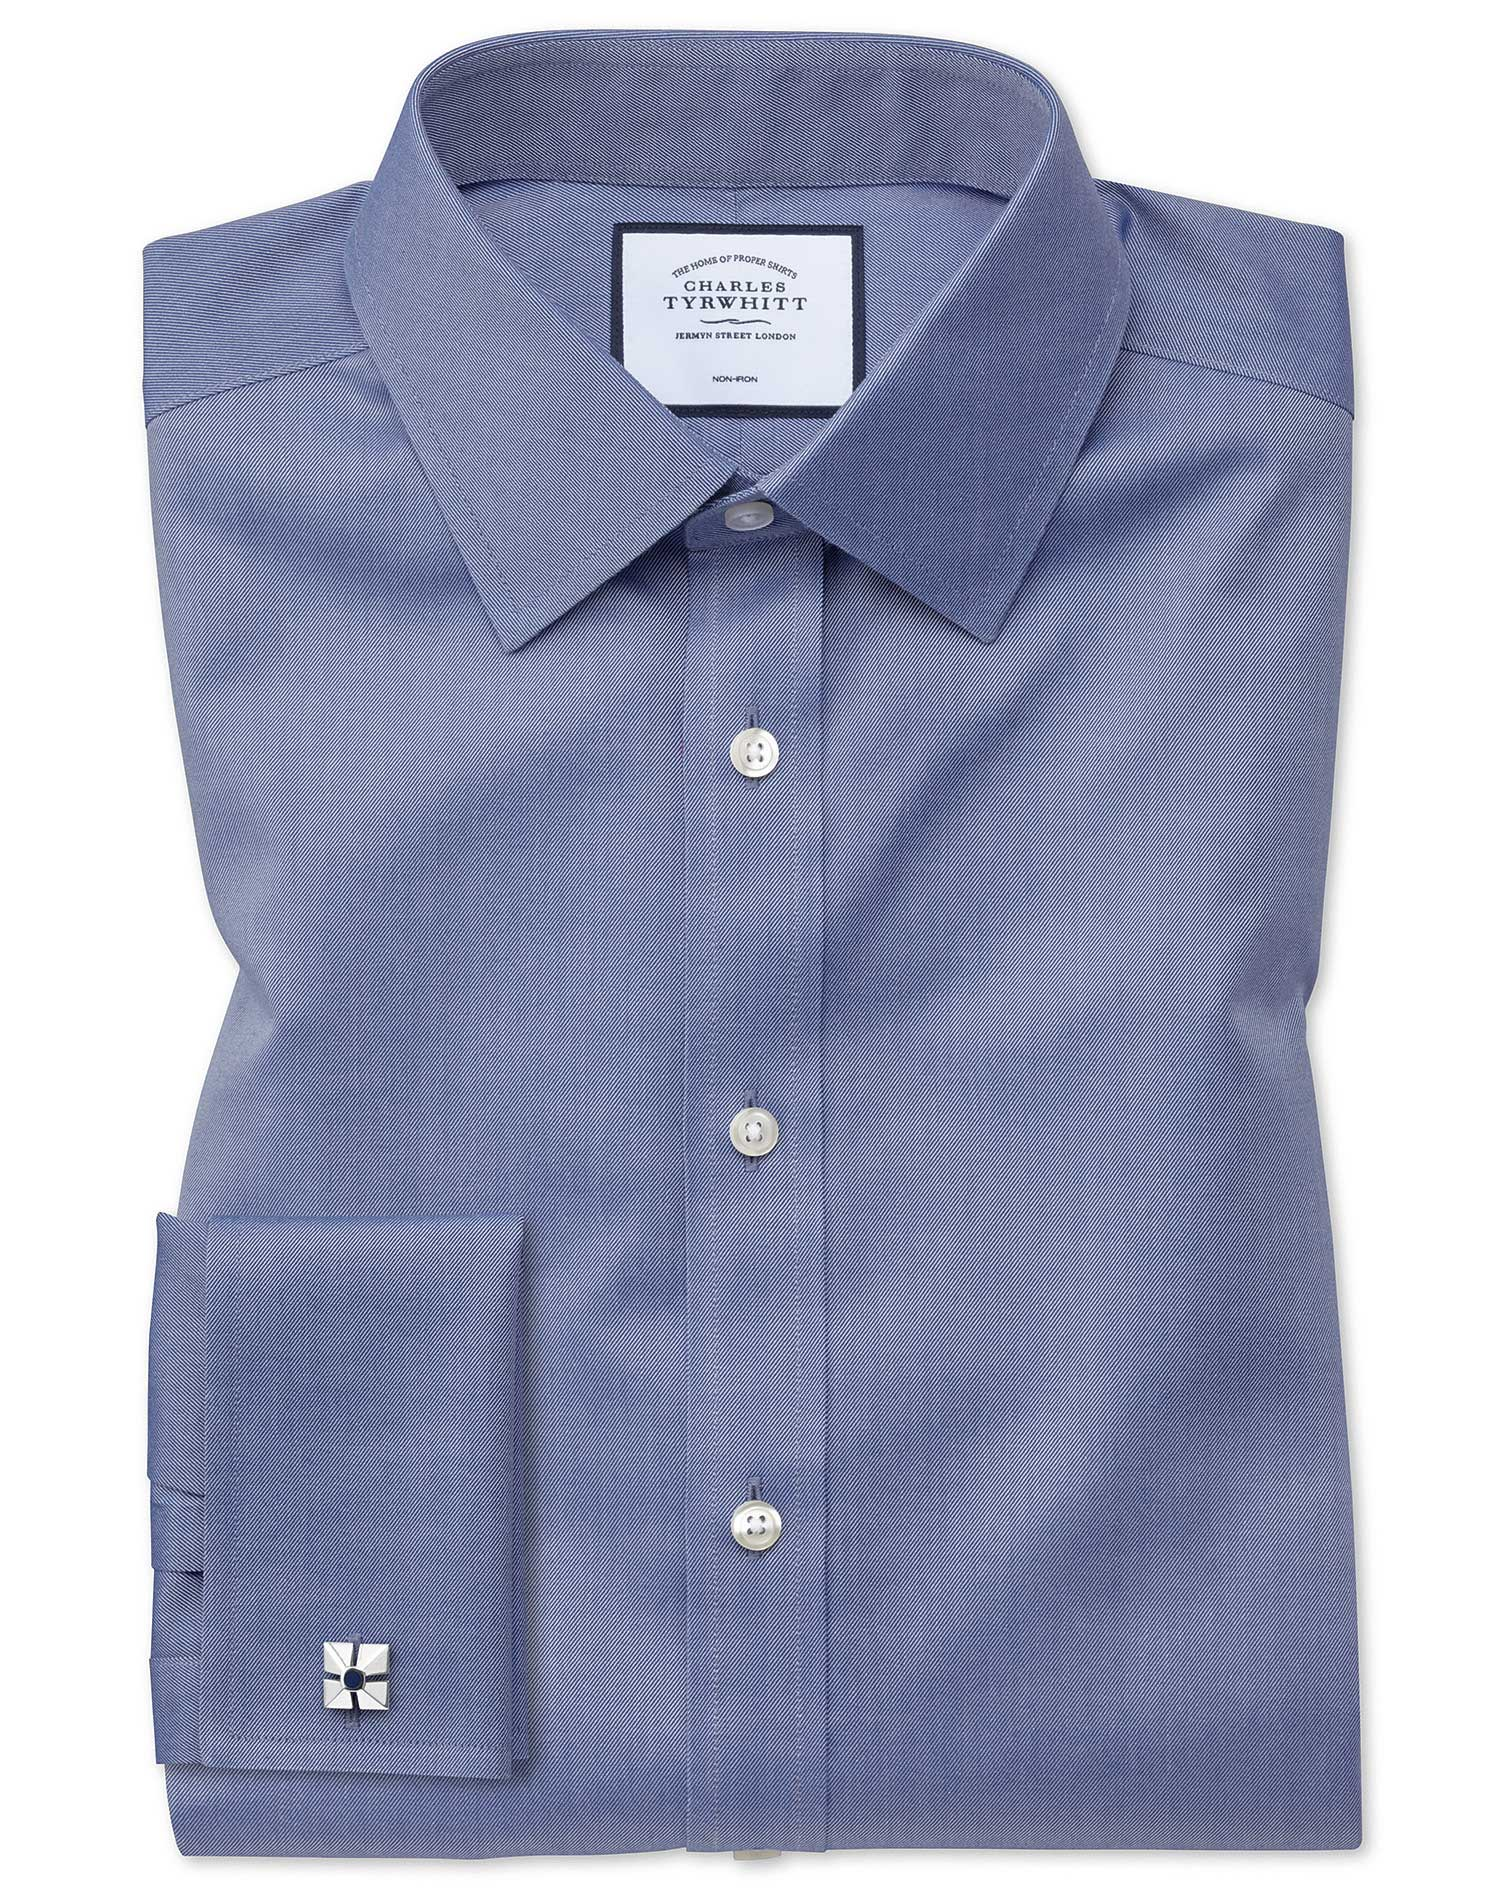 Classic Fit Non-Iron Twill Mid Blue Cotton Formal Shirt Double Cuff Size 19/37 by Charles Tyrwhitt